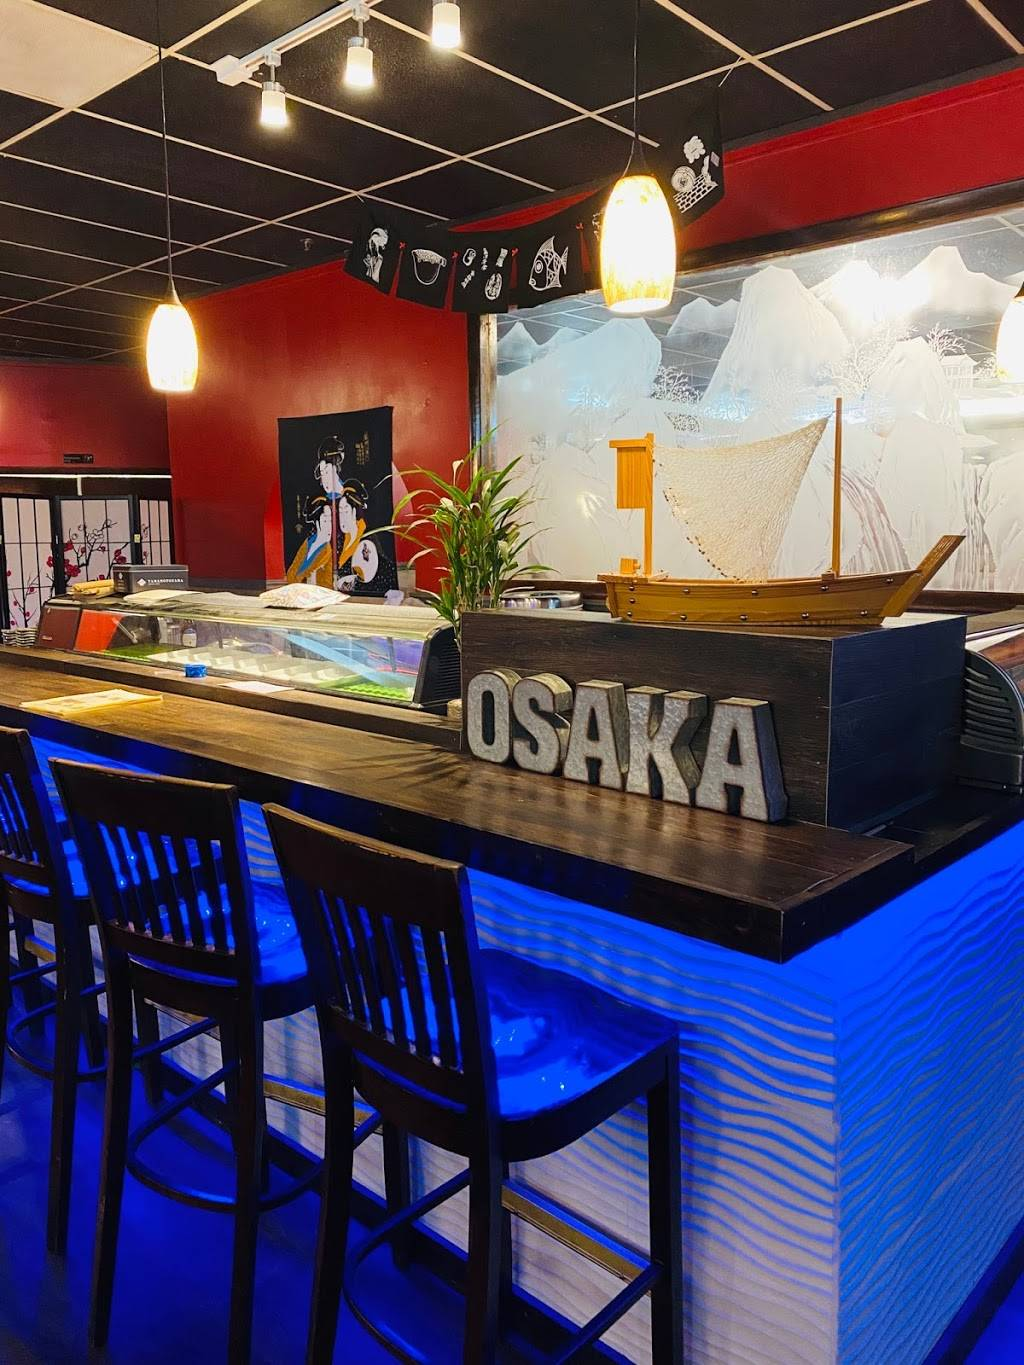 Osaka Sushi Bar and Asian Cuisine   restaurant   16 Cherokee Crossing Suite 3, Whittier, NC 28789, USA   8285541888 OR +1 828-554-1888